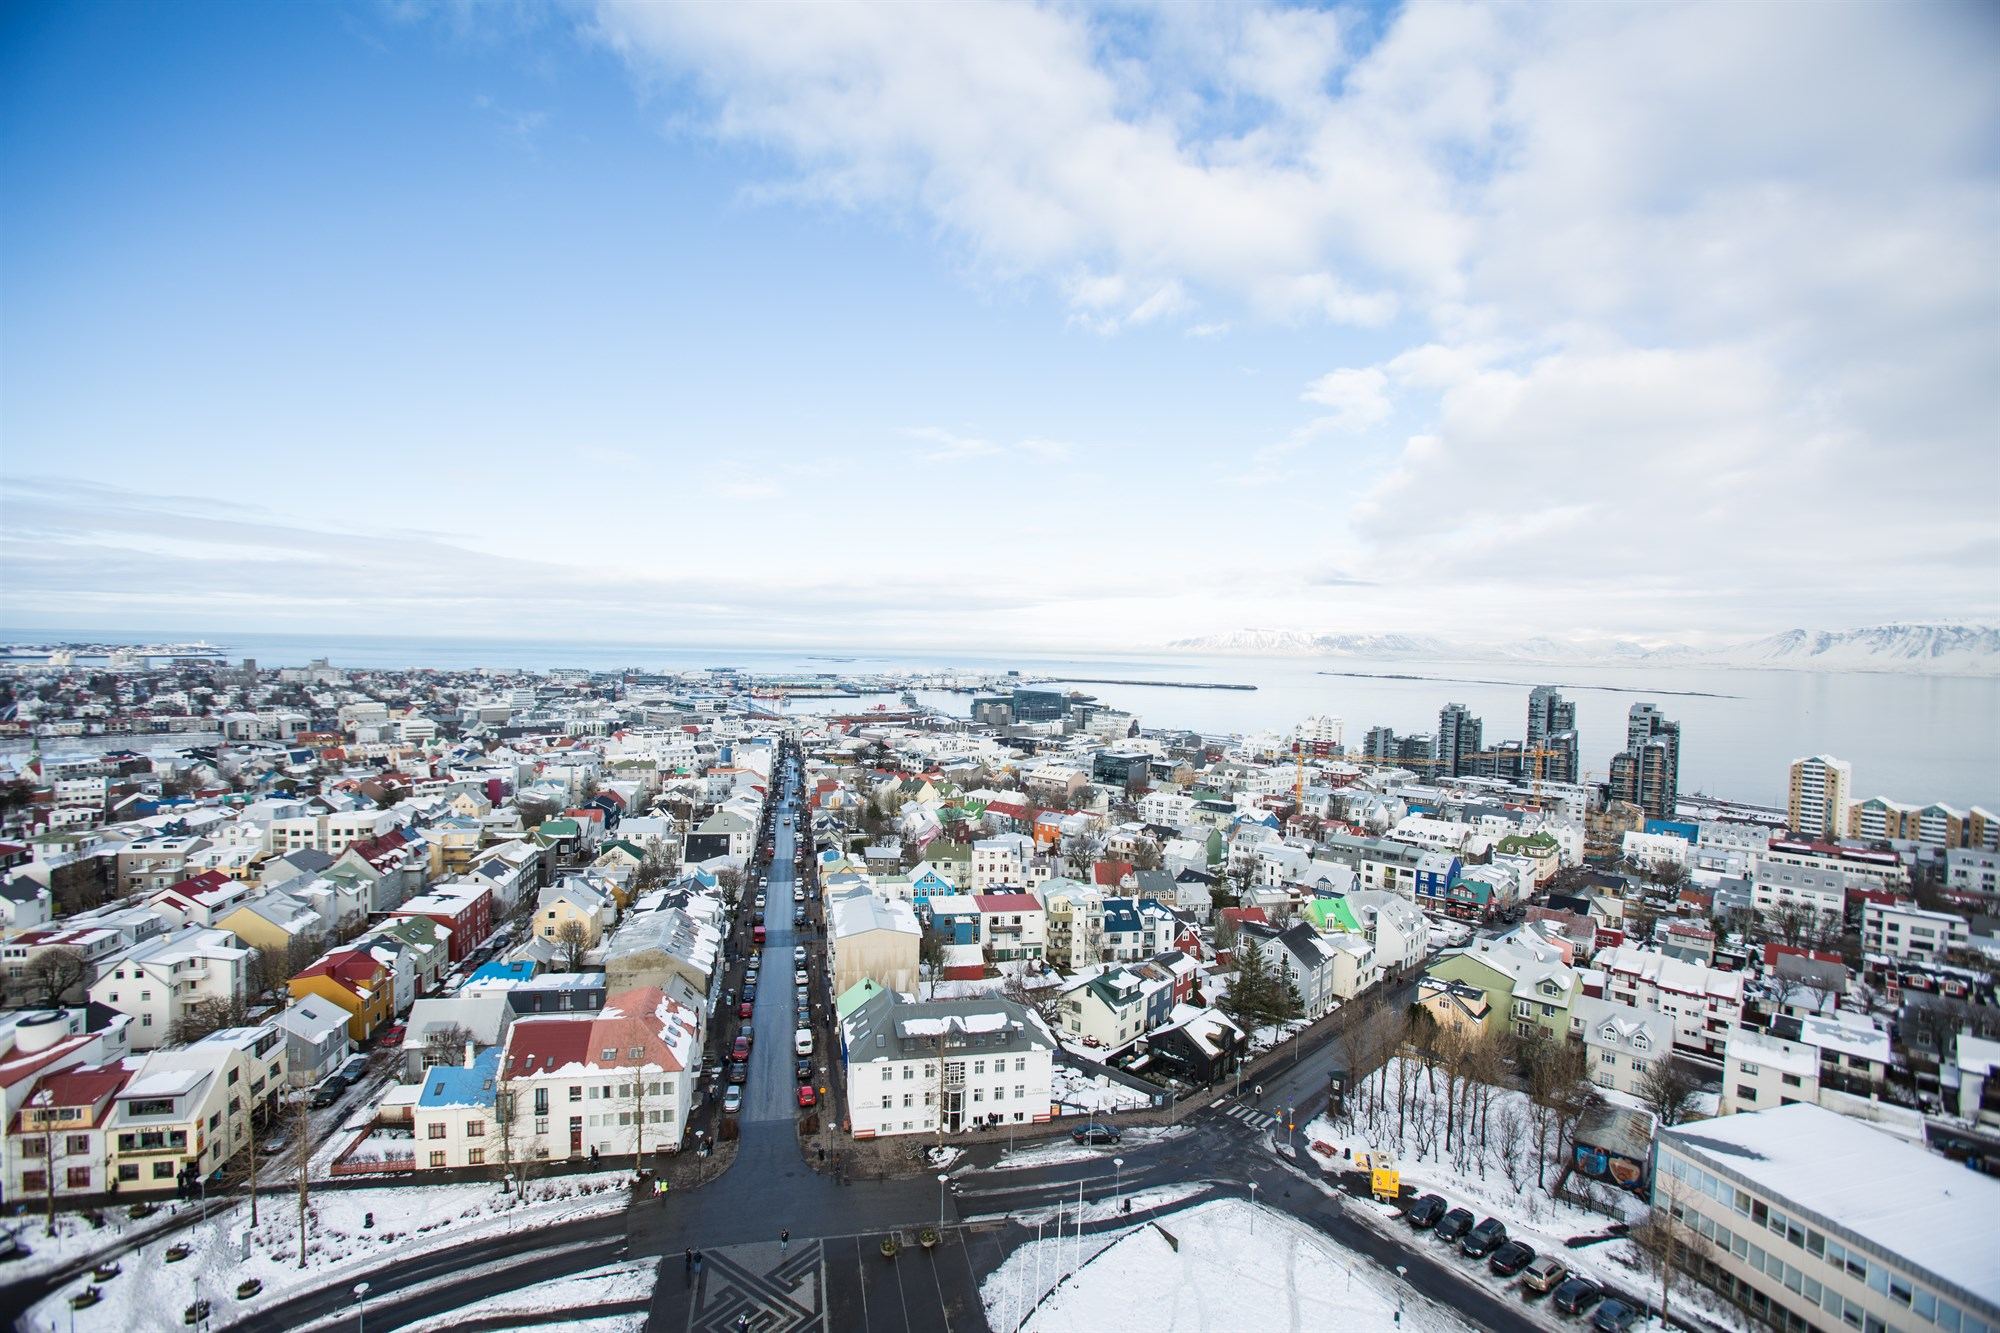 Reykjavik: The ultimate guide to the capital city of Iceland